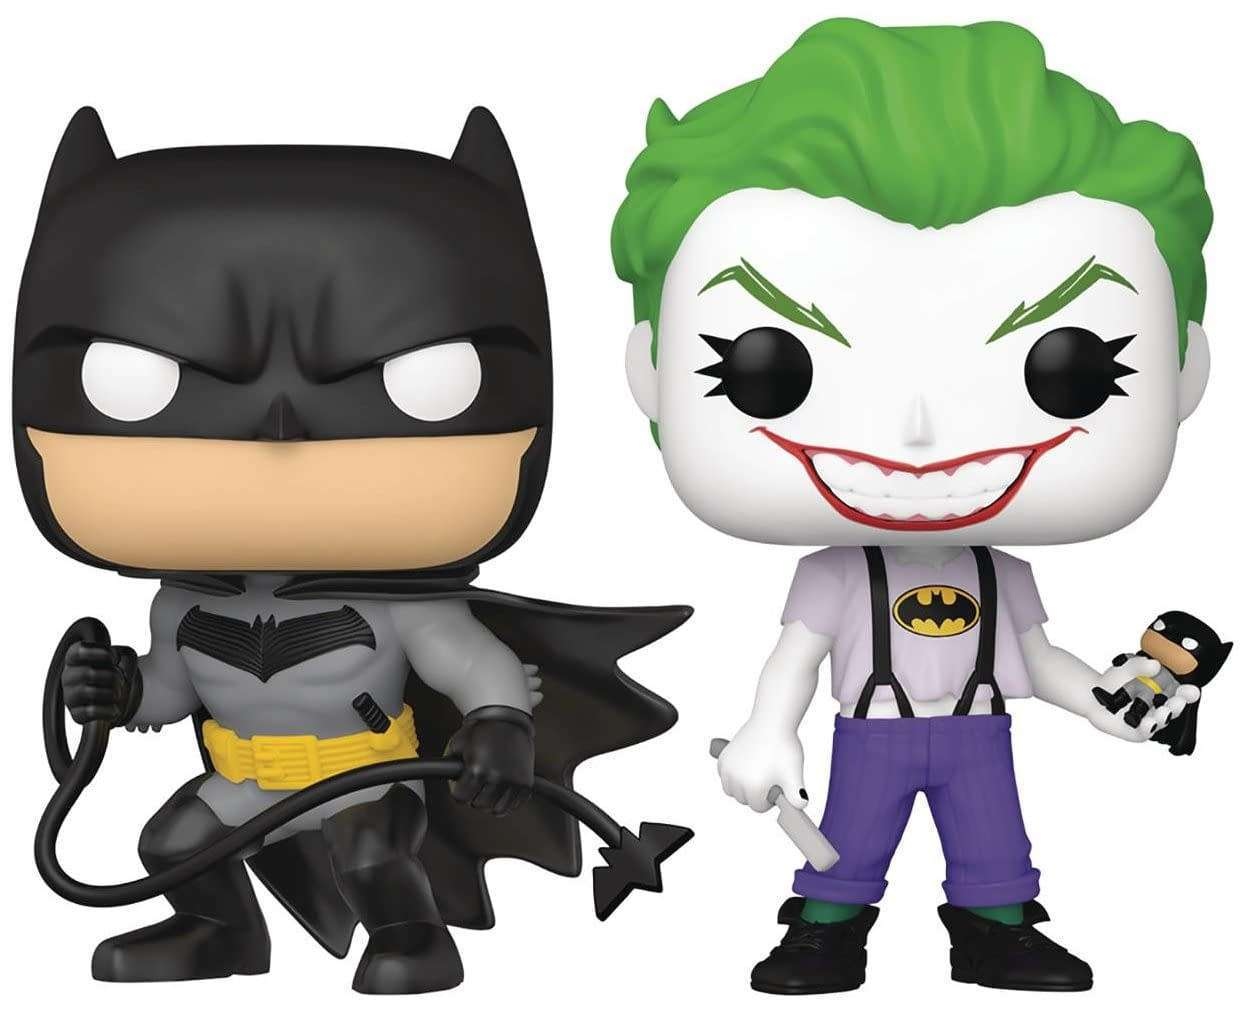 SDCC 2021 Exclusive Batman White Knight Funko Pop 2-Pack Is Up for Pre-Order